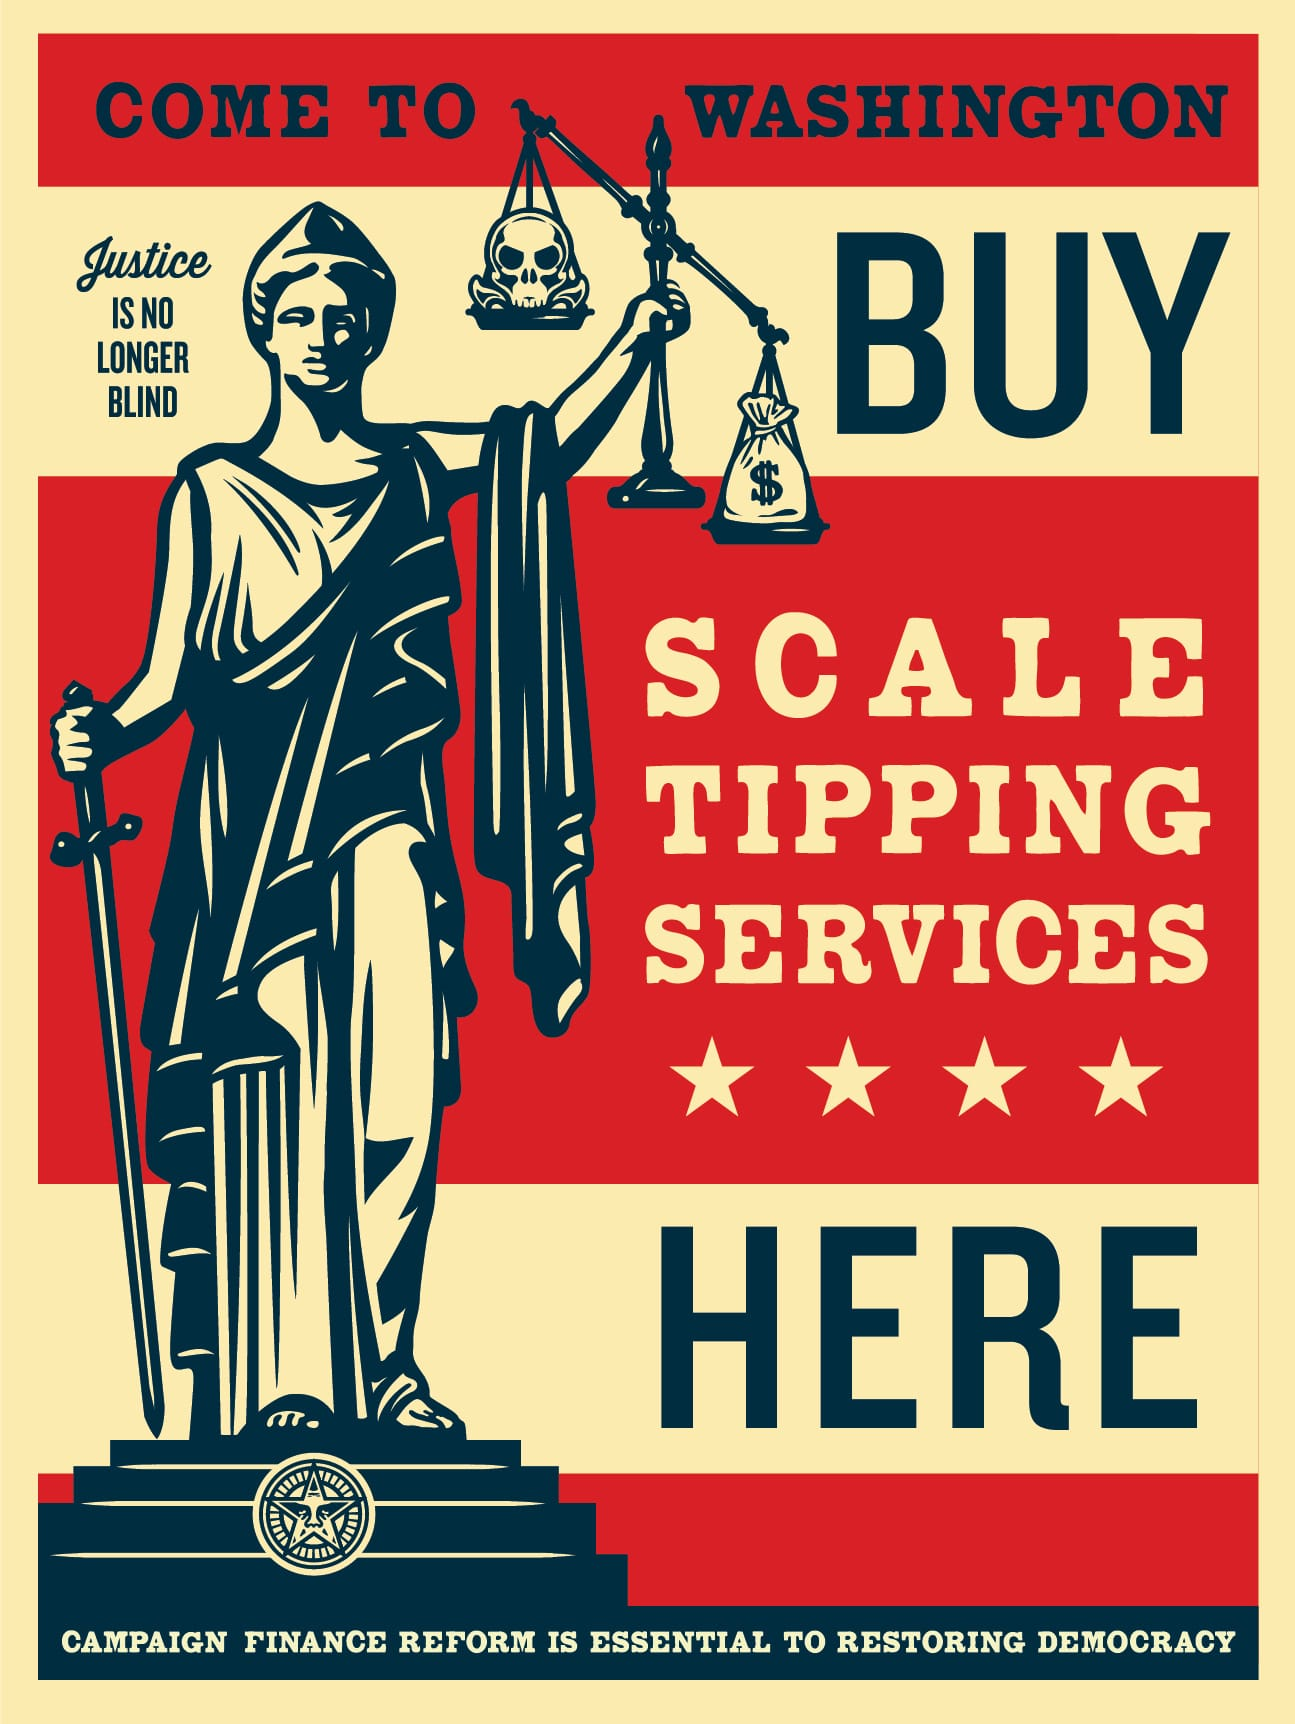 Scale Tipping Services by Obey